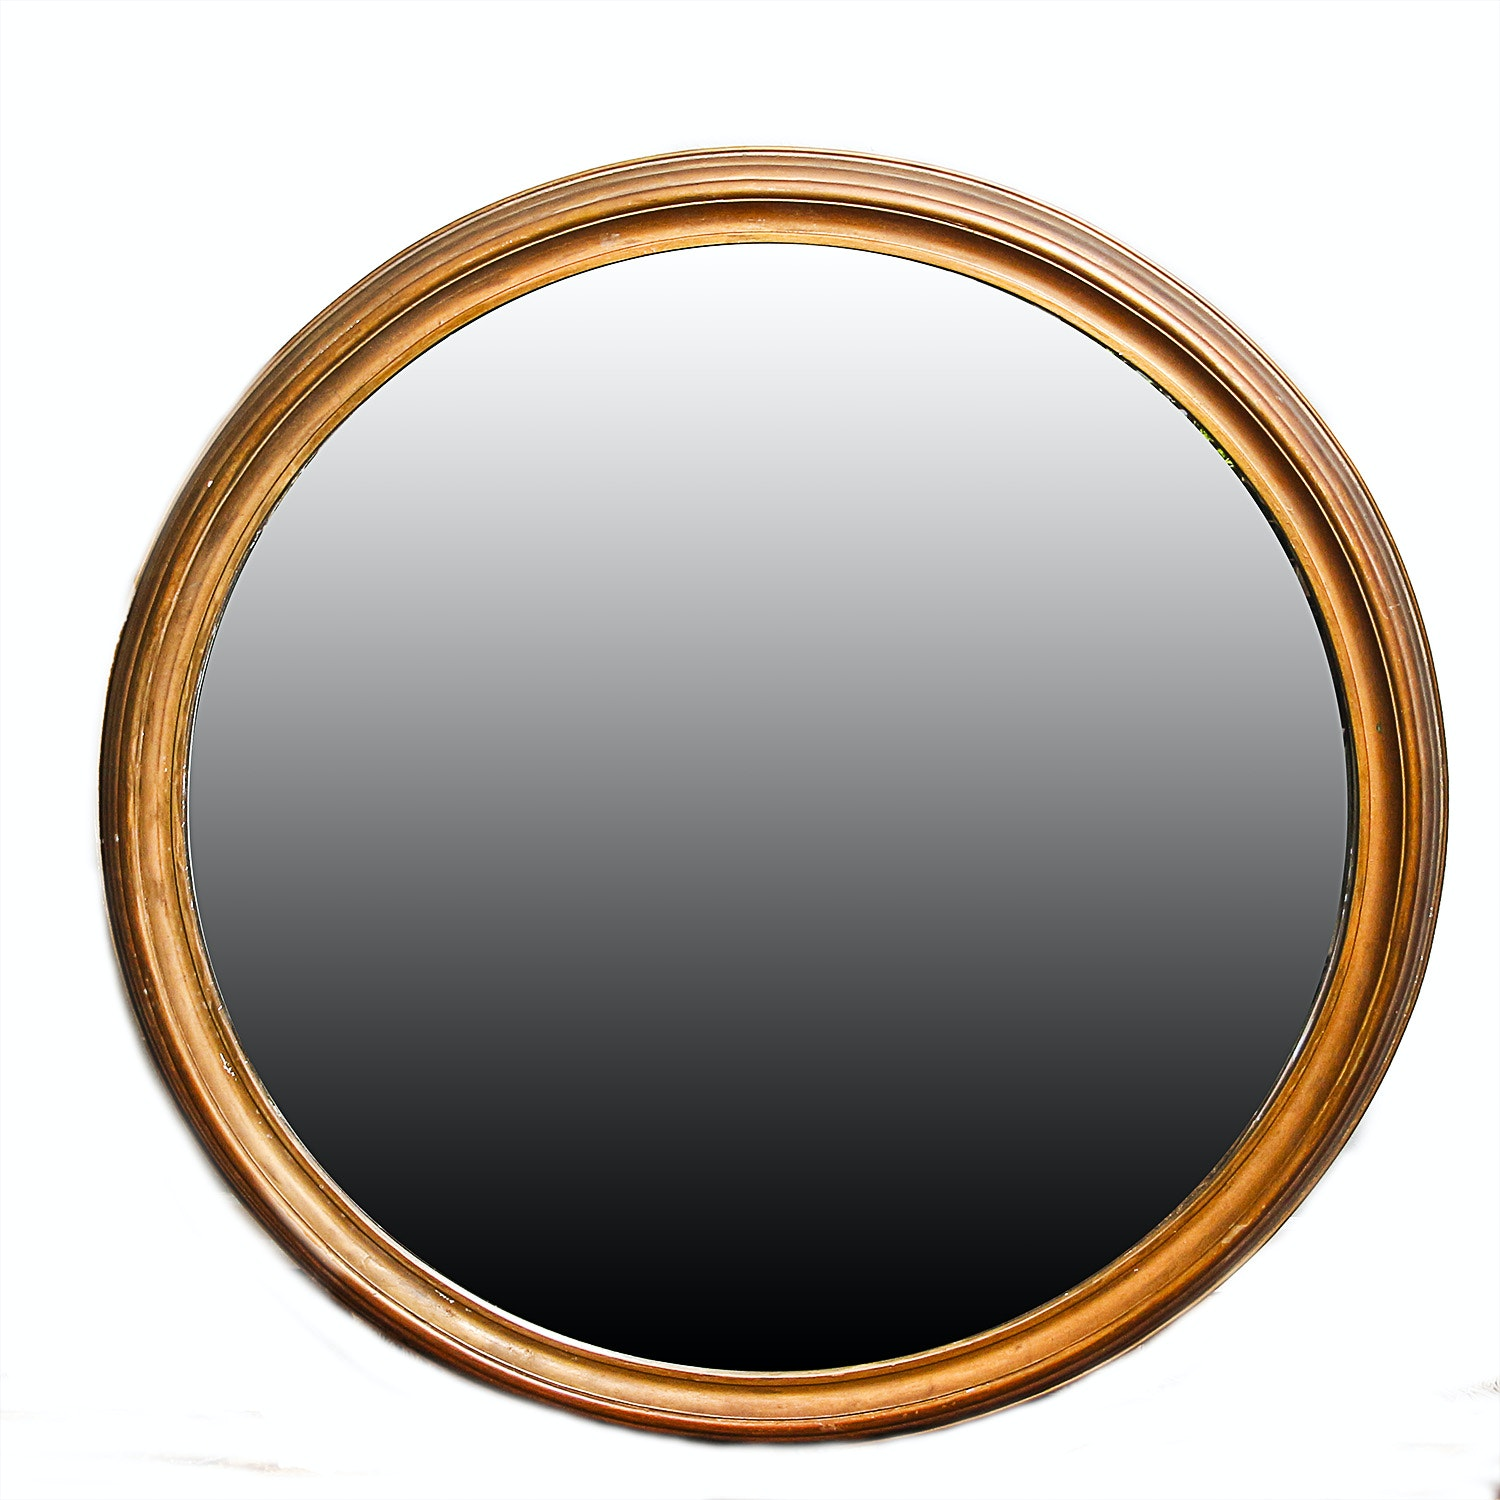 Round Mirror with Wooden Frame and Gilt Finish